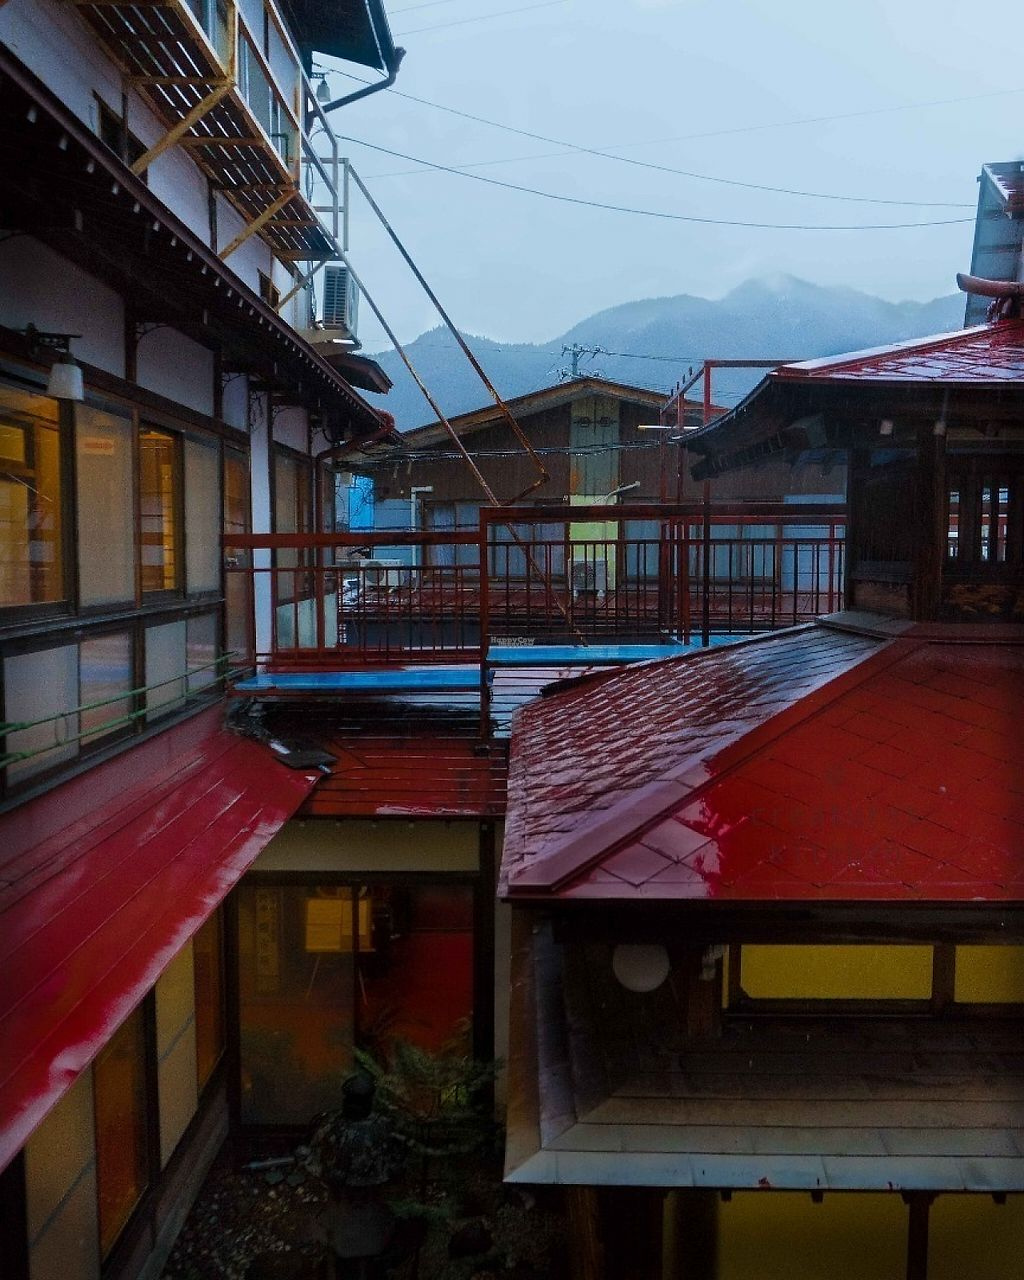 """Photo of Yudakana Onsen Seifuso  by <a href=""""/members/profile/EmmaCebuliak"""">EmmaCebuliak</a> <br/>View from a guest room overlooking the Japanese style court yard and one of the bathhouses.  <br/> January 20, 2017  - <a href='/contact/abuse/image/84950/213552'>Report</a>"""